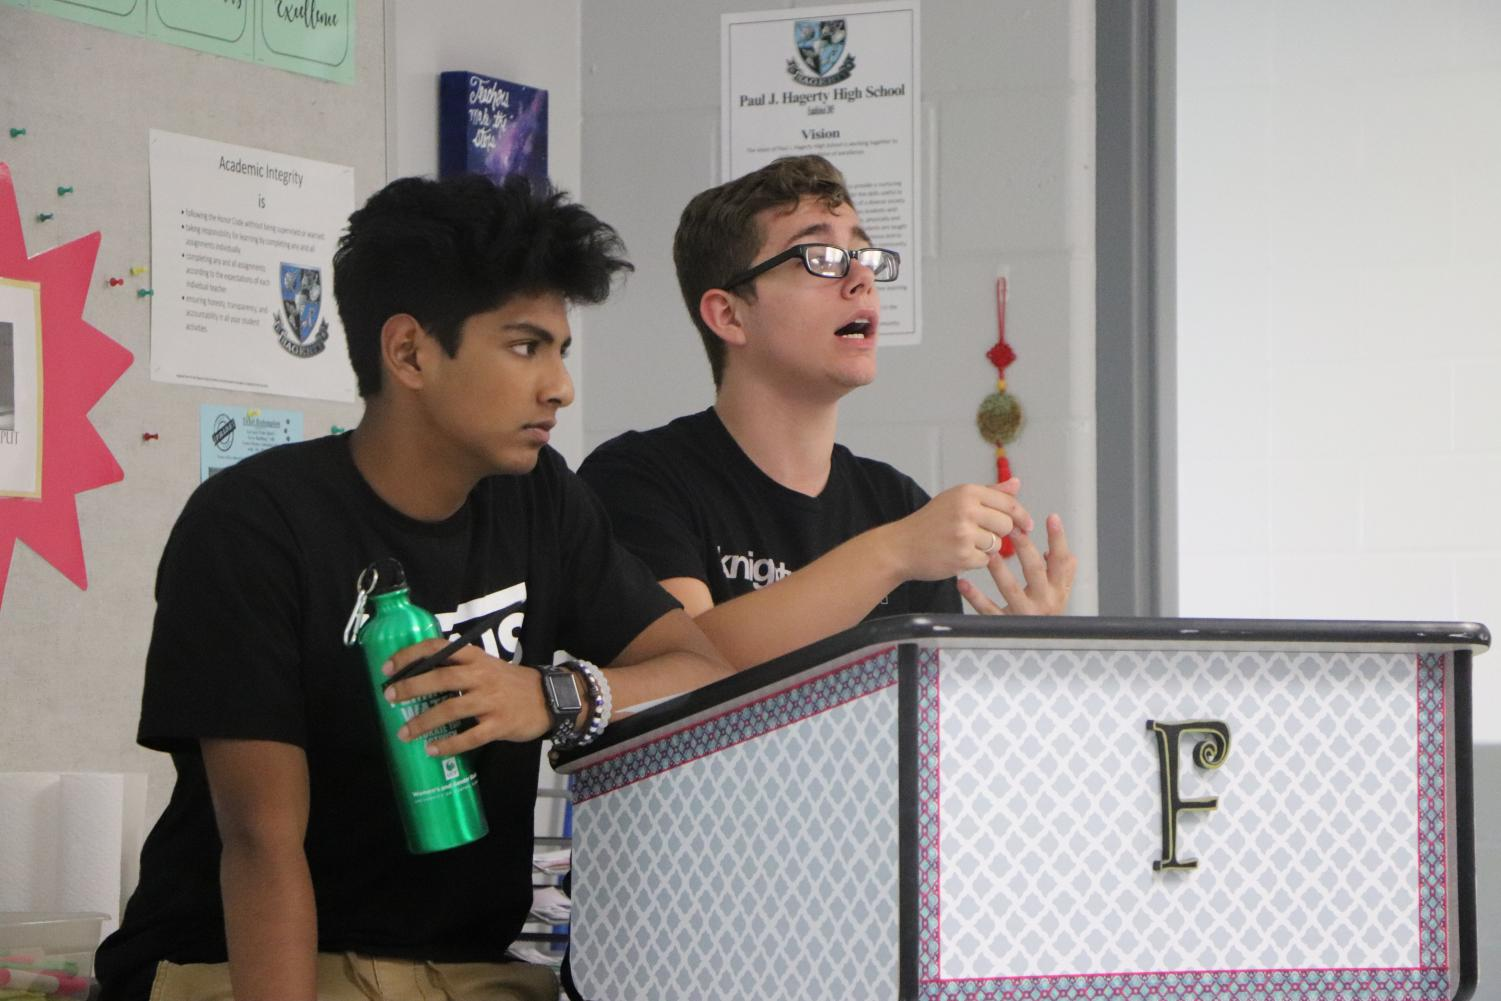 Talking to the club about current events, senior Michael Mcnamara and junior Artie Nayak were trying to explain to members the news of the week.